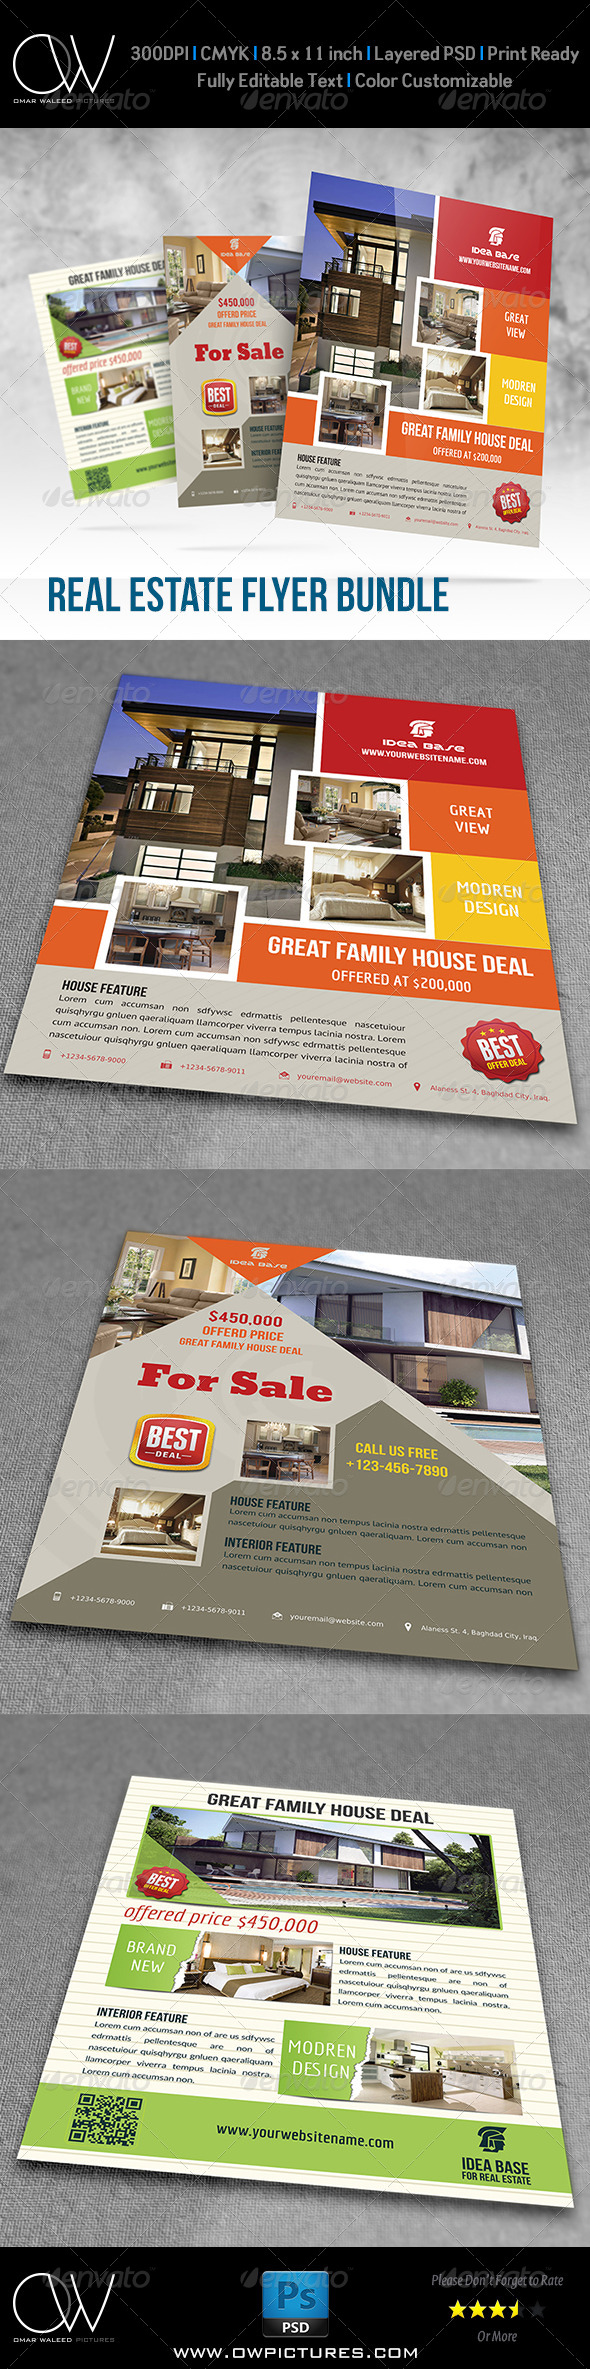 Real Estate Flyer Bundle Template Vol.2